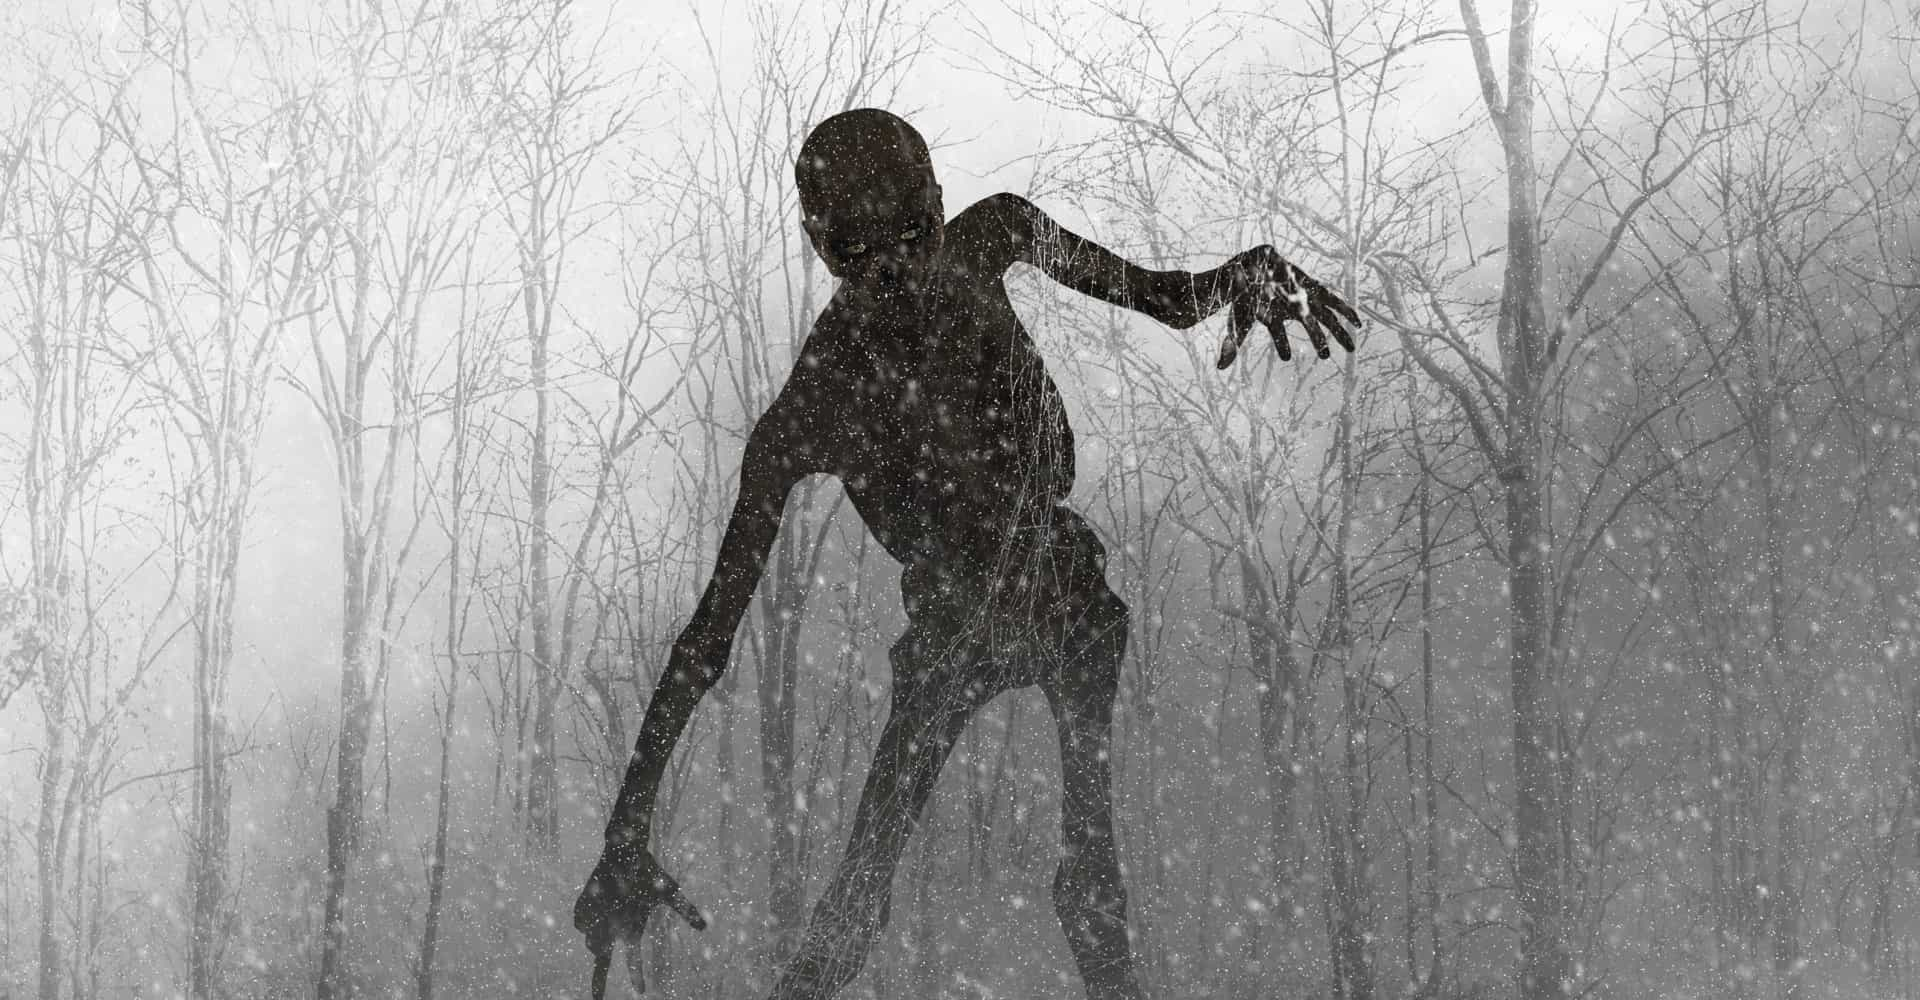 Creepiest mythical monsters living in Canada